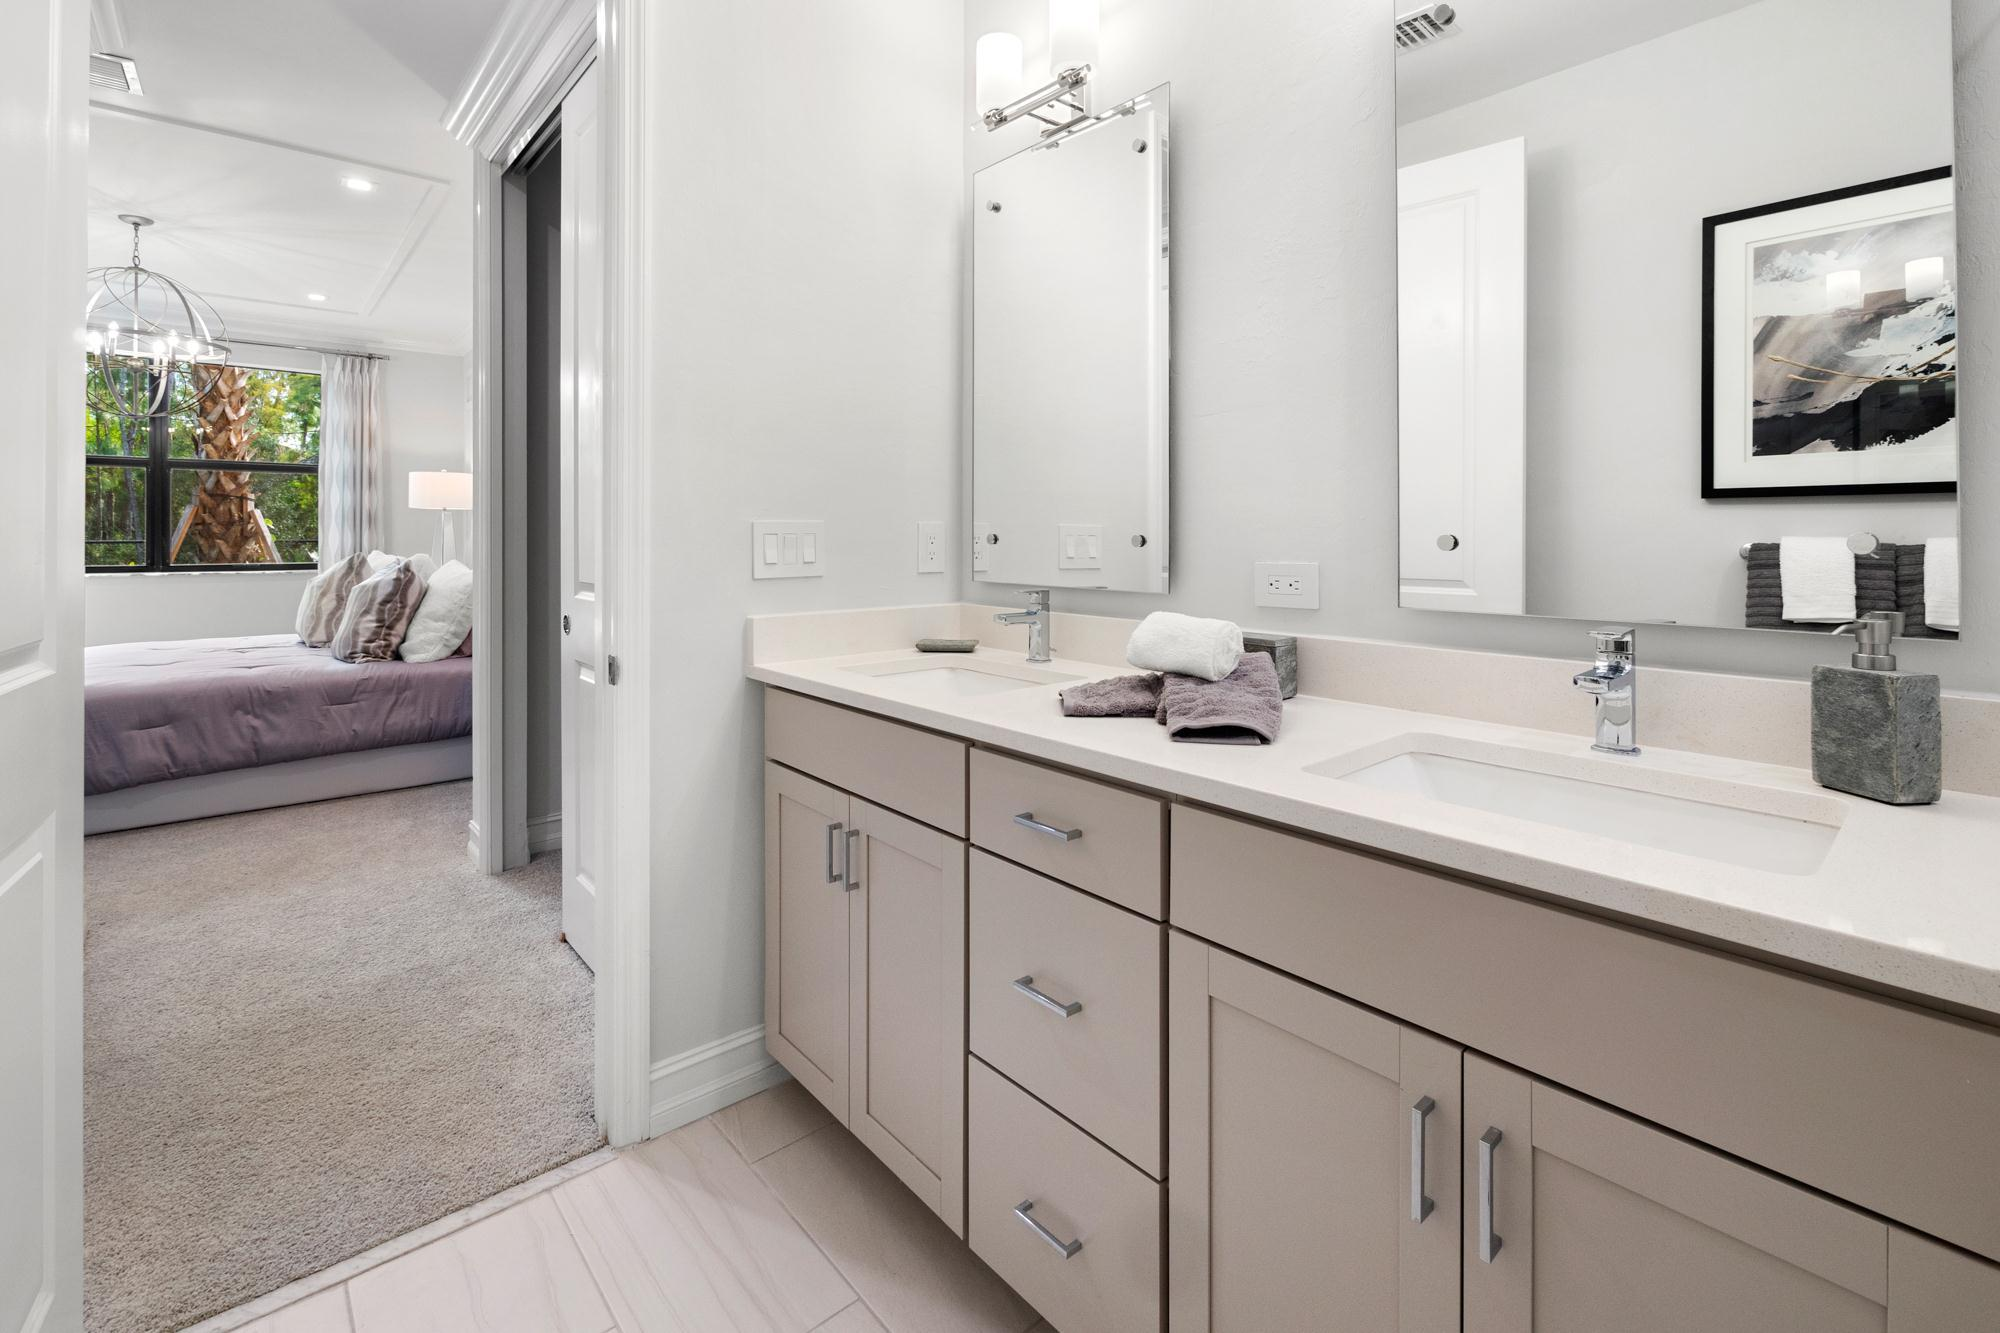 Bathroom featured in the Sagamore By Sobel Co in Naples, FL